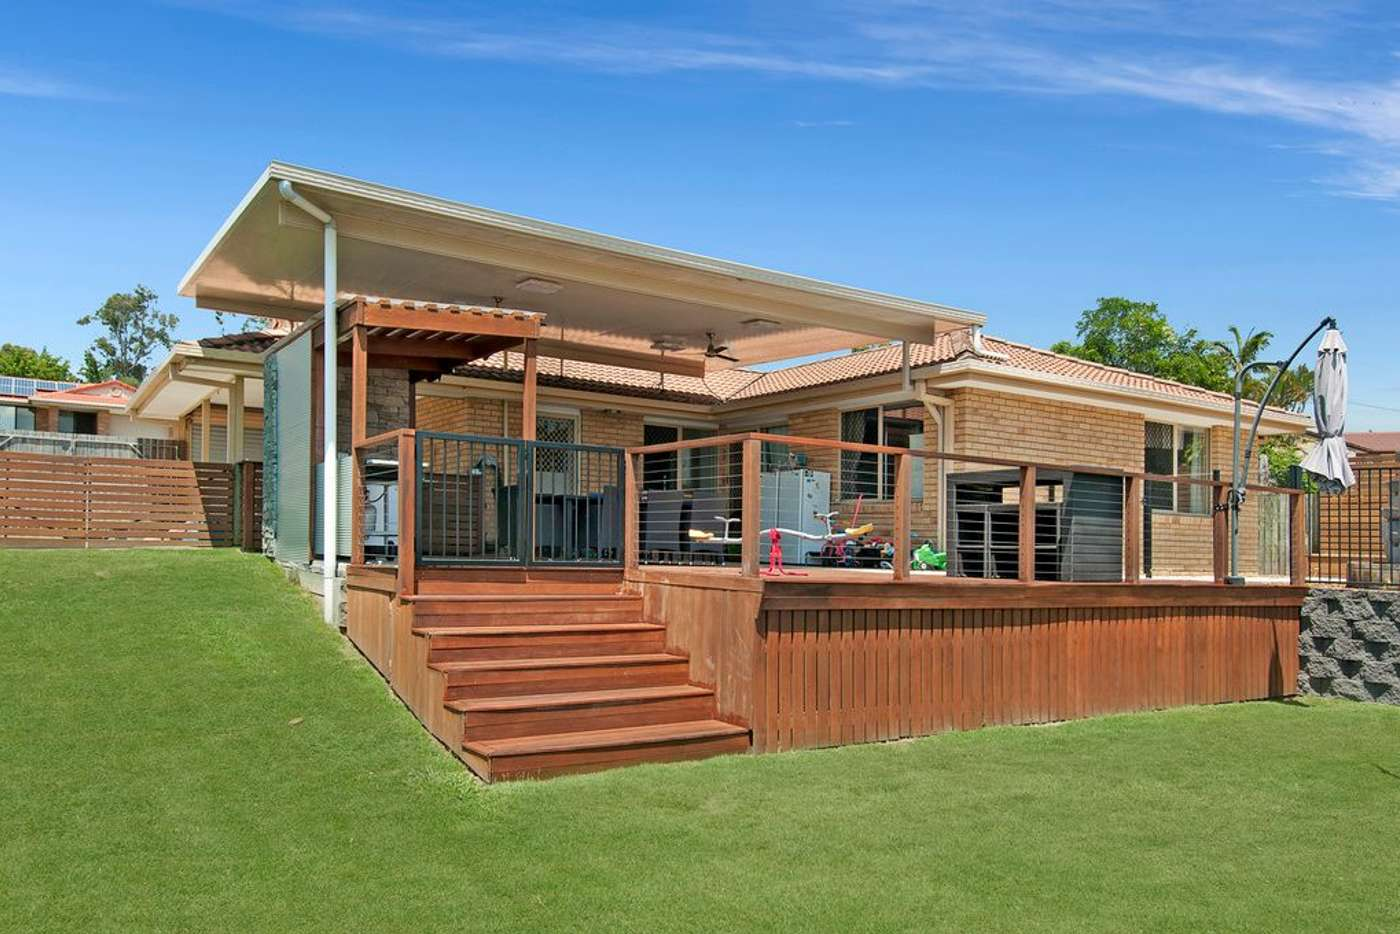 Main view of Homely house listing, 30 Jessie Crescent, Bethania QLD 4205